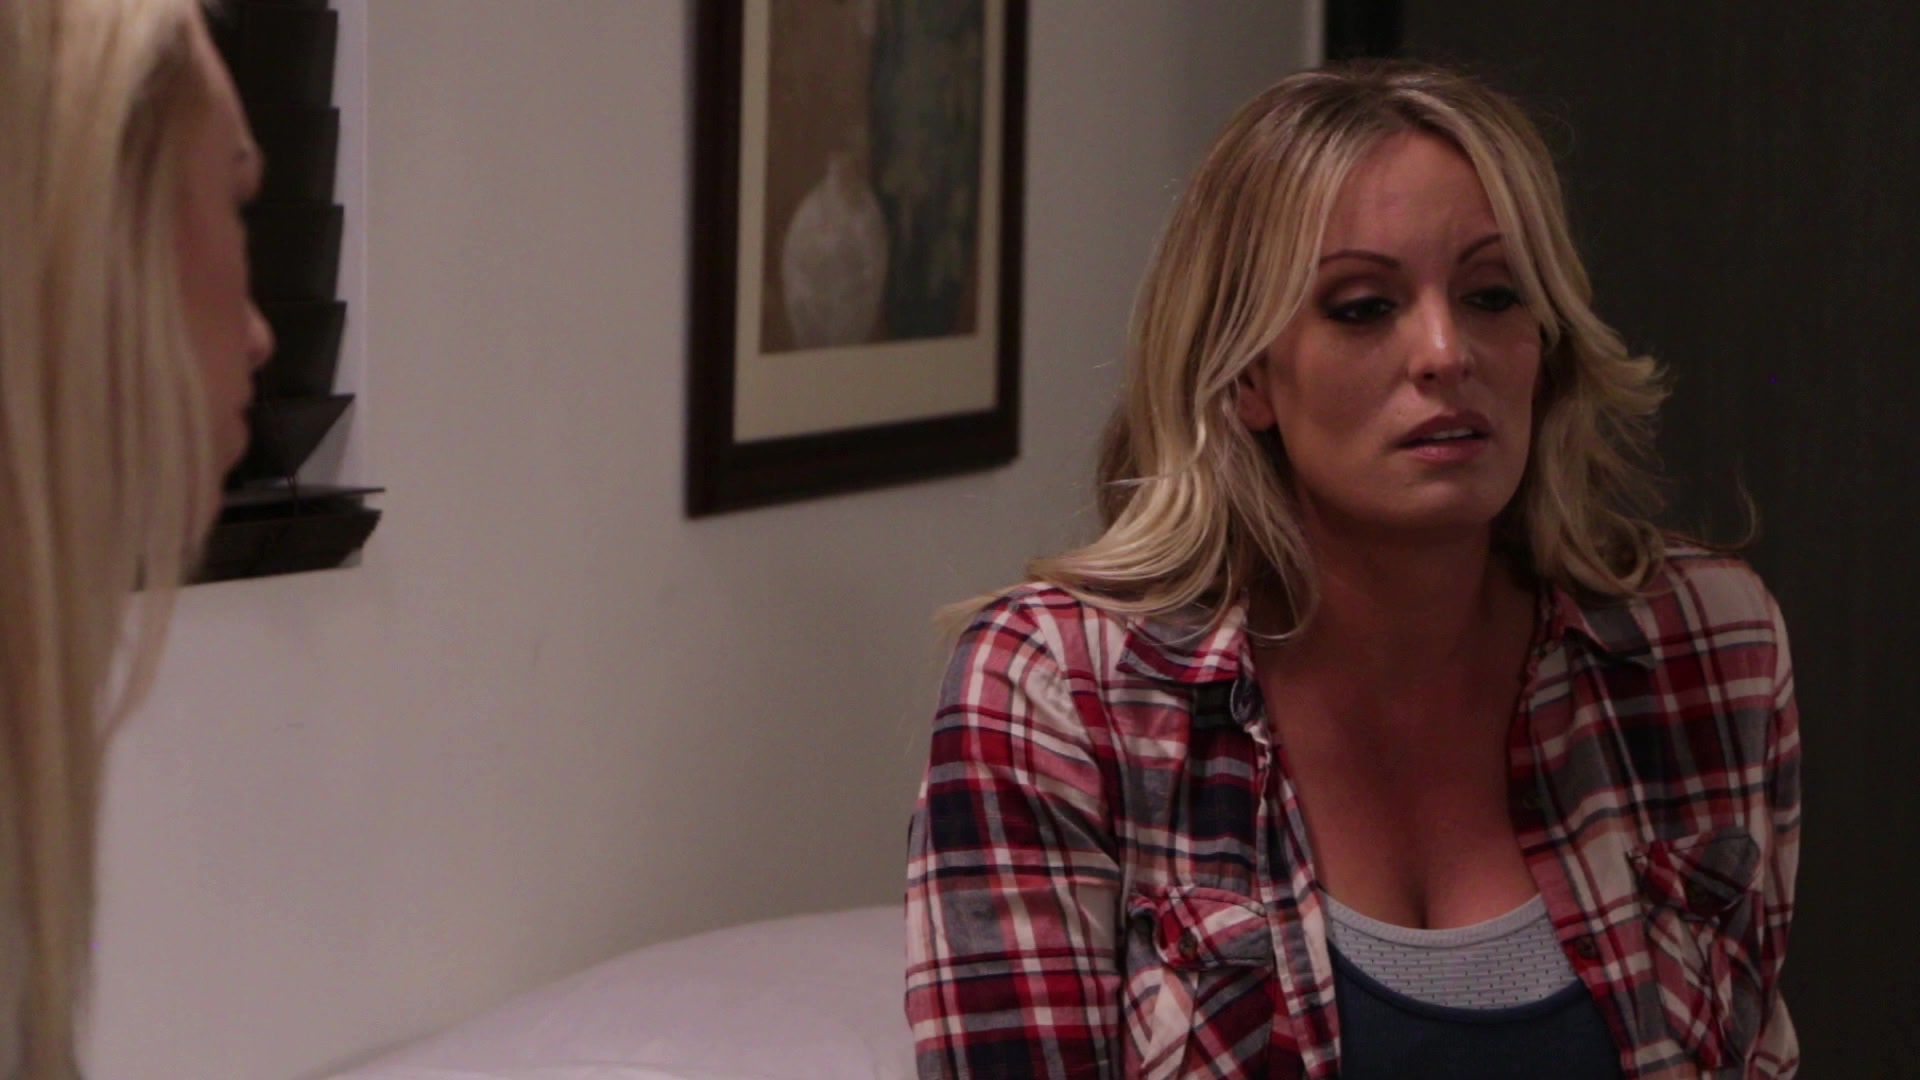 Scene with Stormy Daniels - image 3 out of 20